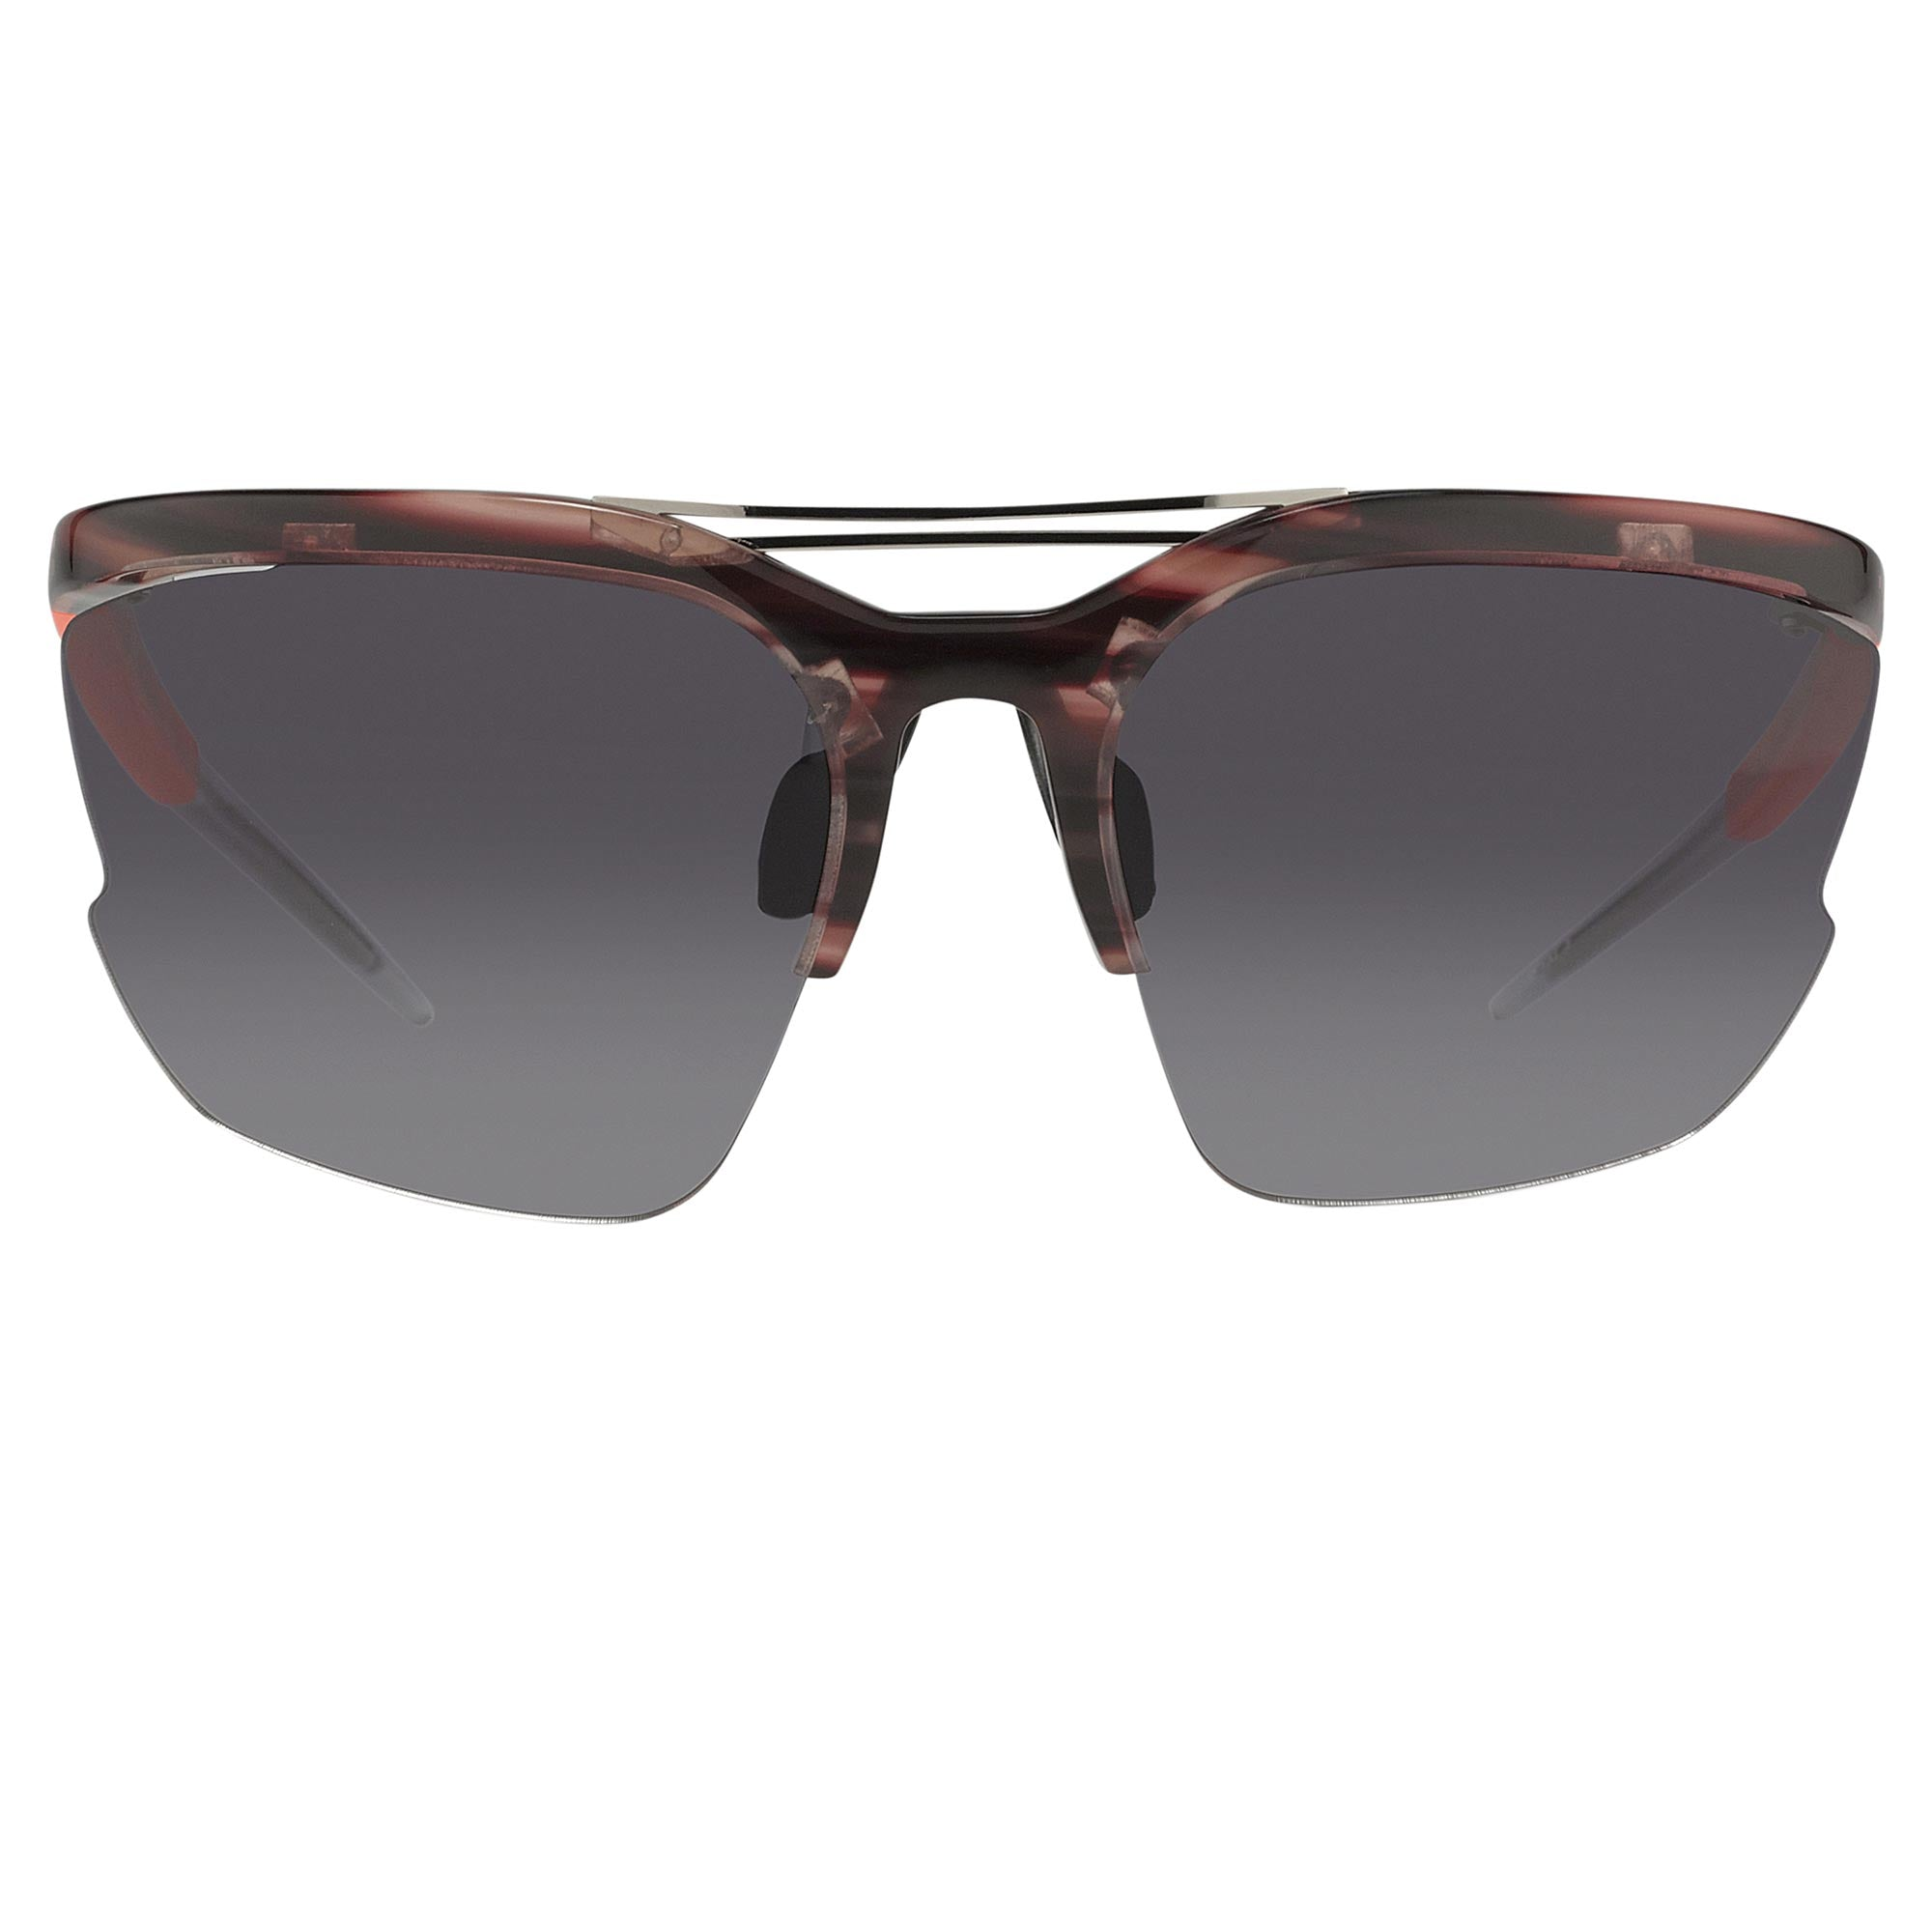 Prabal Gurung Sunglasses Female Special Frame Purple Horn Category 3 Black Lenses PG21C2SUN - Watches & Crystals